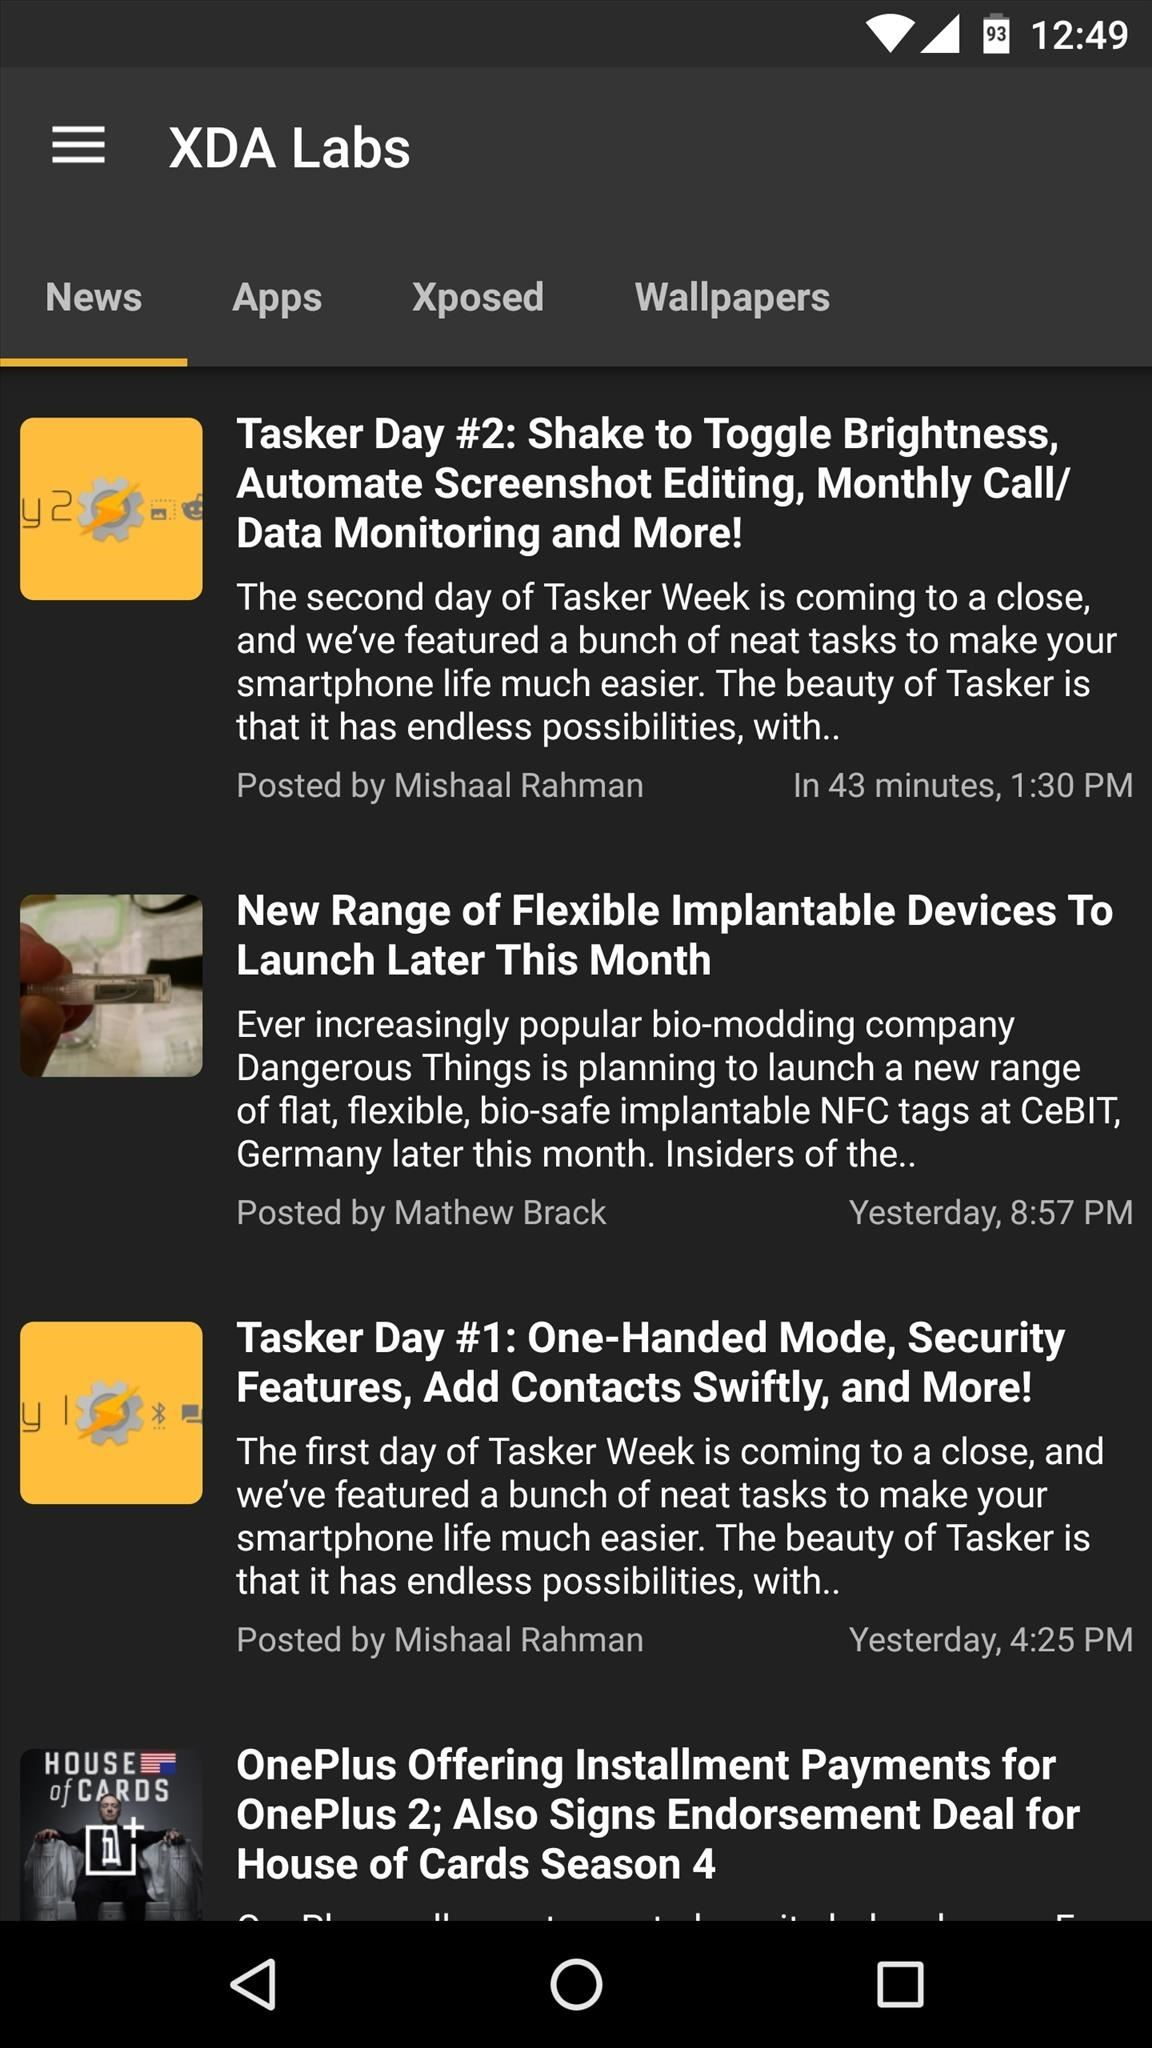 from here the news tab will show you articles about android development which can often be a good way to learn about cool new concepts